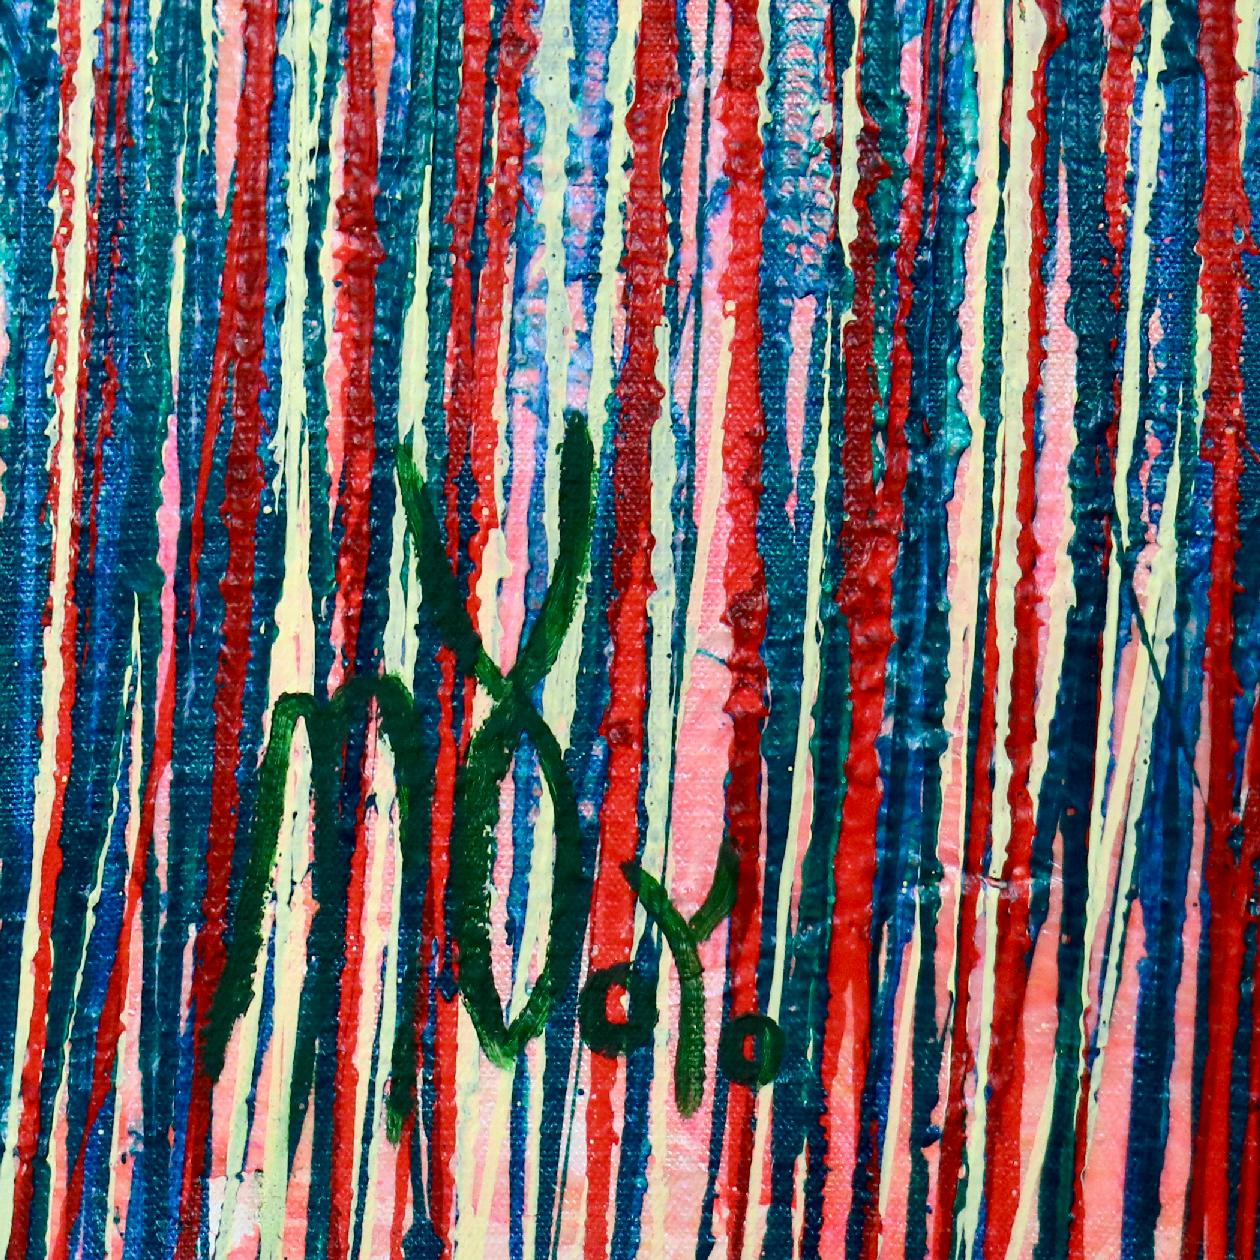 Signature / DETAIL - A Closer Look (More is More) 2 (2020) by Nestor Toro